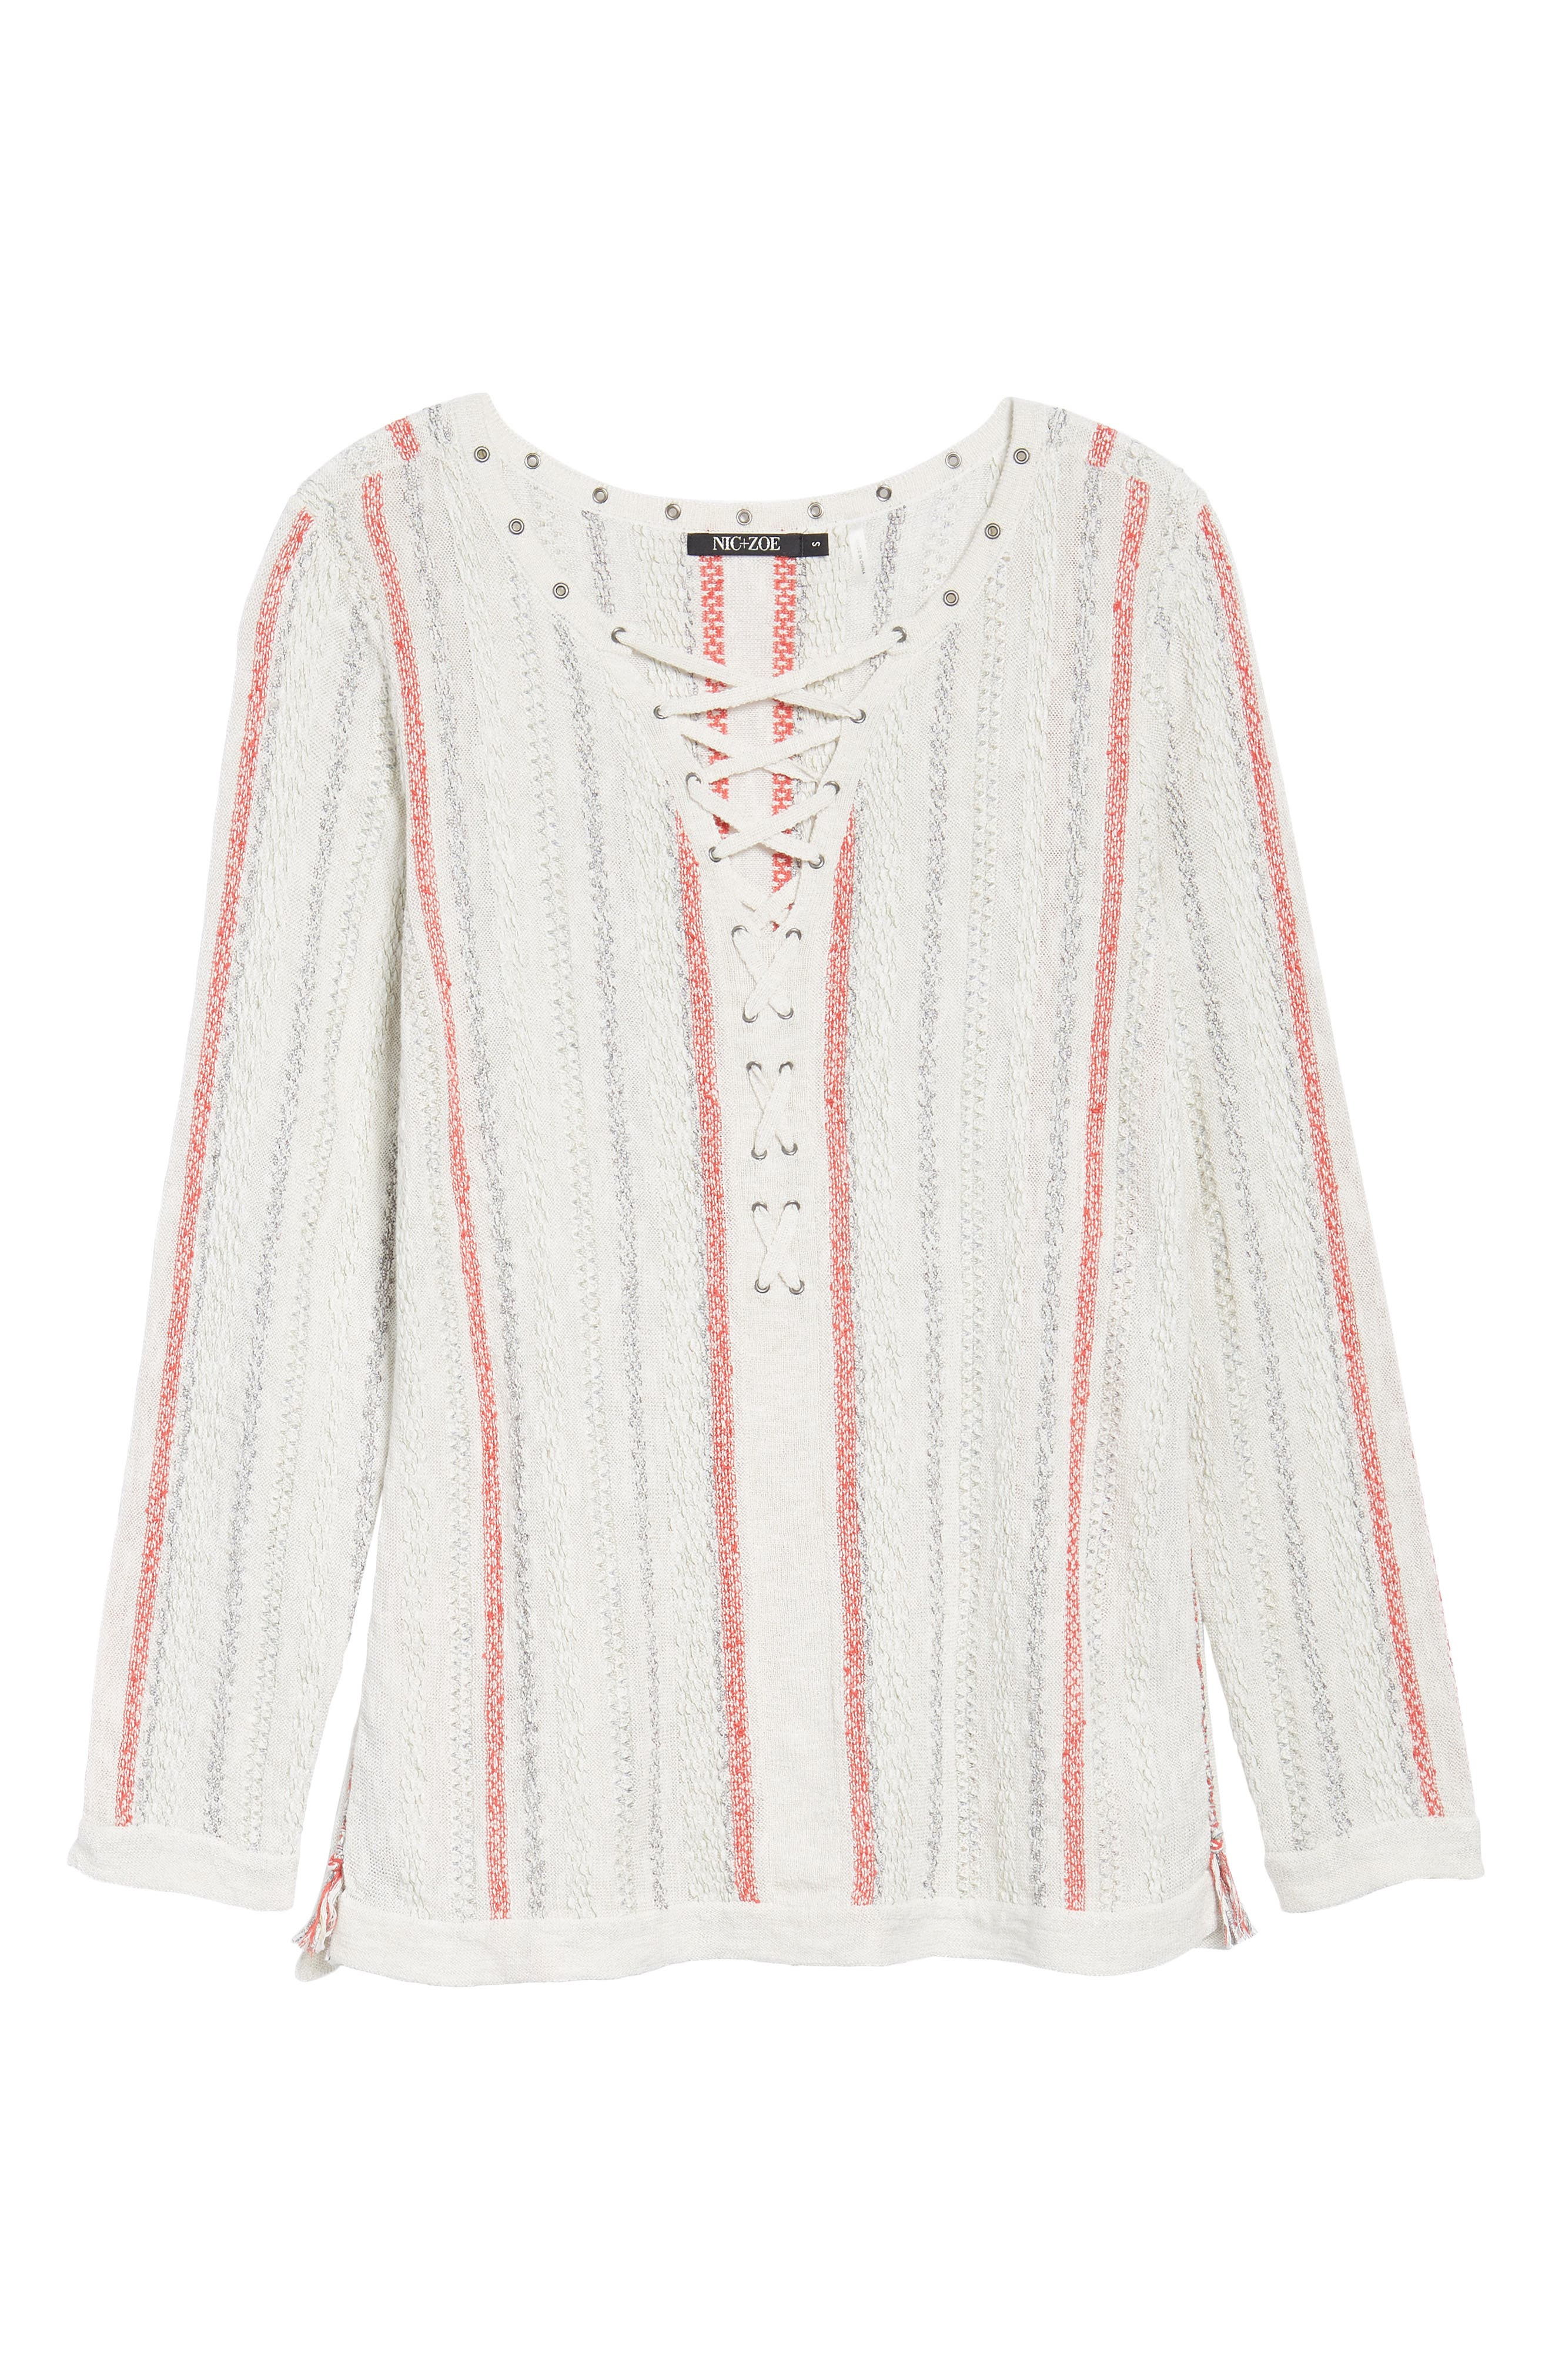 NIC + ZOE Cross Country Lace-Up Top,                             Alternate thumbnail 6, color,                             Multi